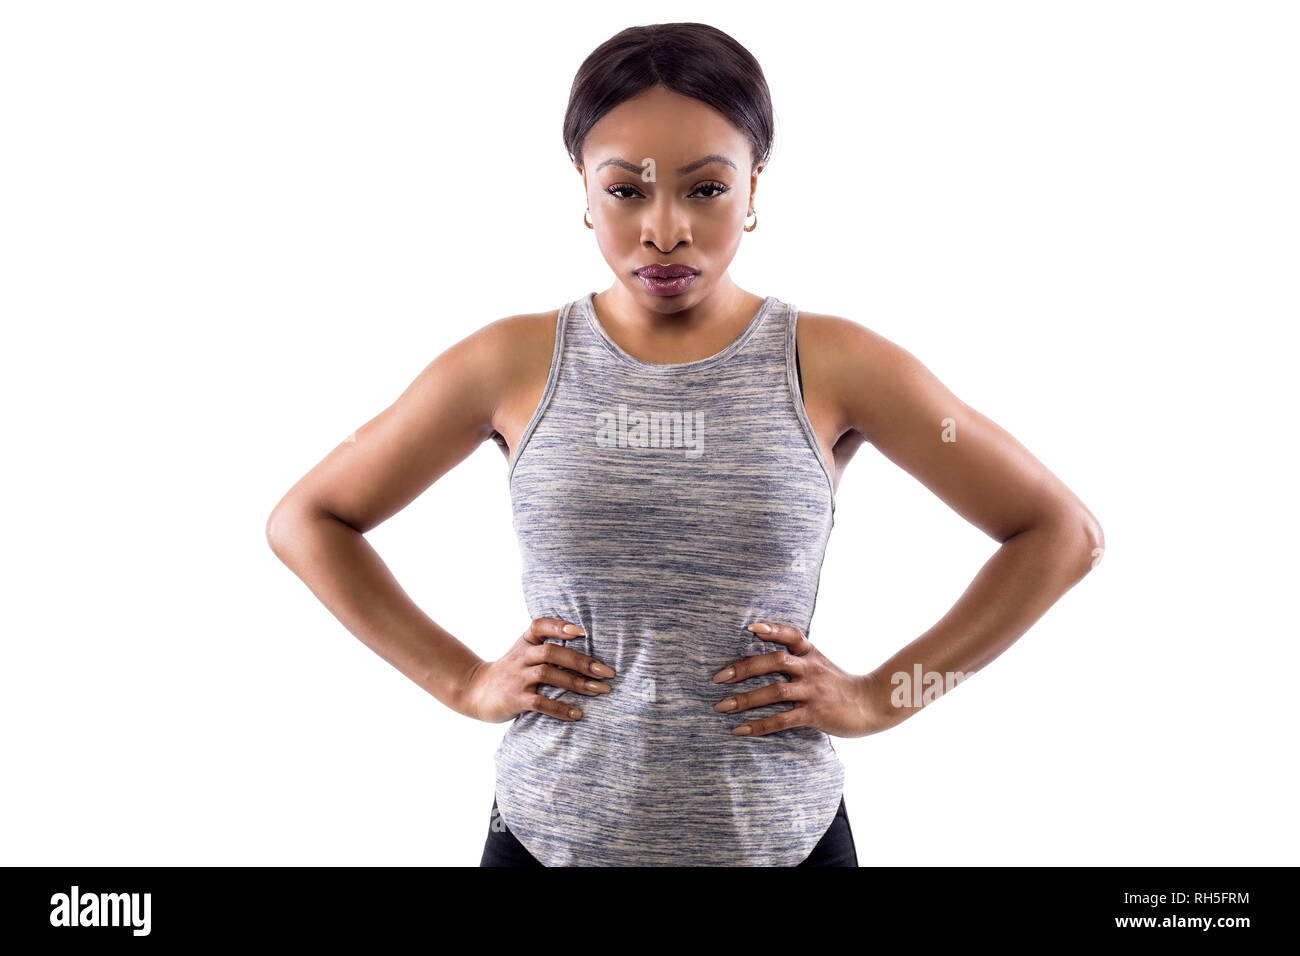 Angry black female wearing athletic outfit on a white background as a fitness trainer - Stock Image